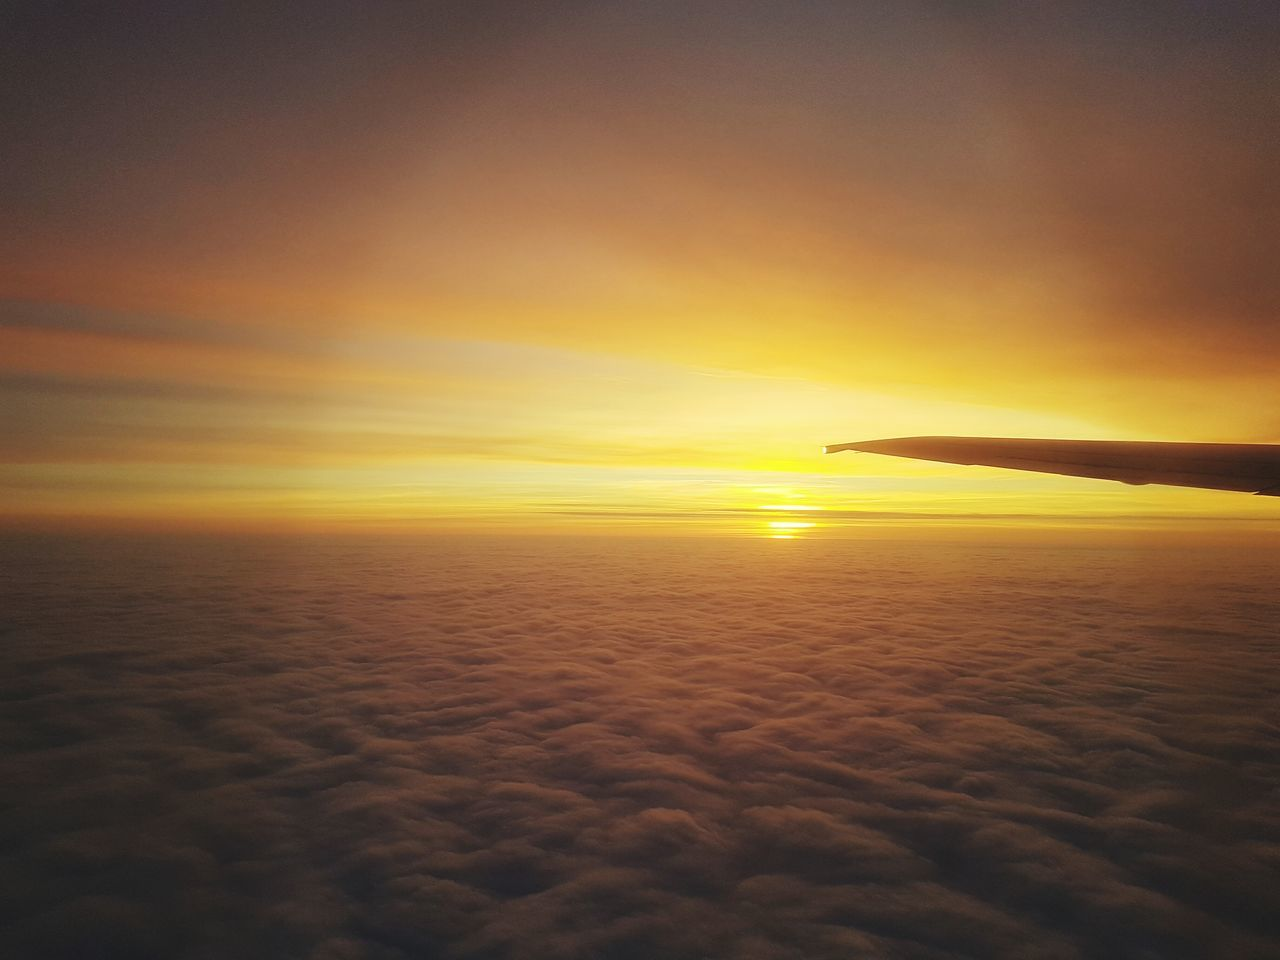 sunset, sky, transportation, beauty in nature, airplane, nature, cloud - sky, scenics, orange color, mode of transport, journey, tranquil scene, air vehicle, travel, flying, tranquility, outdoors, aircraft wing, airplane wing, no people, sun, silhouette, water, day